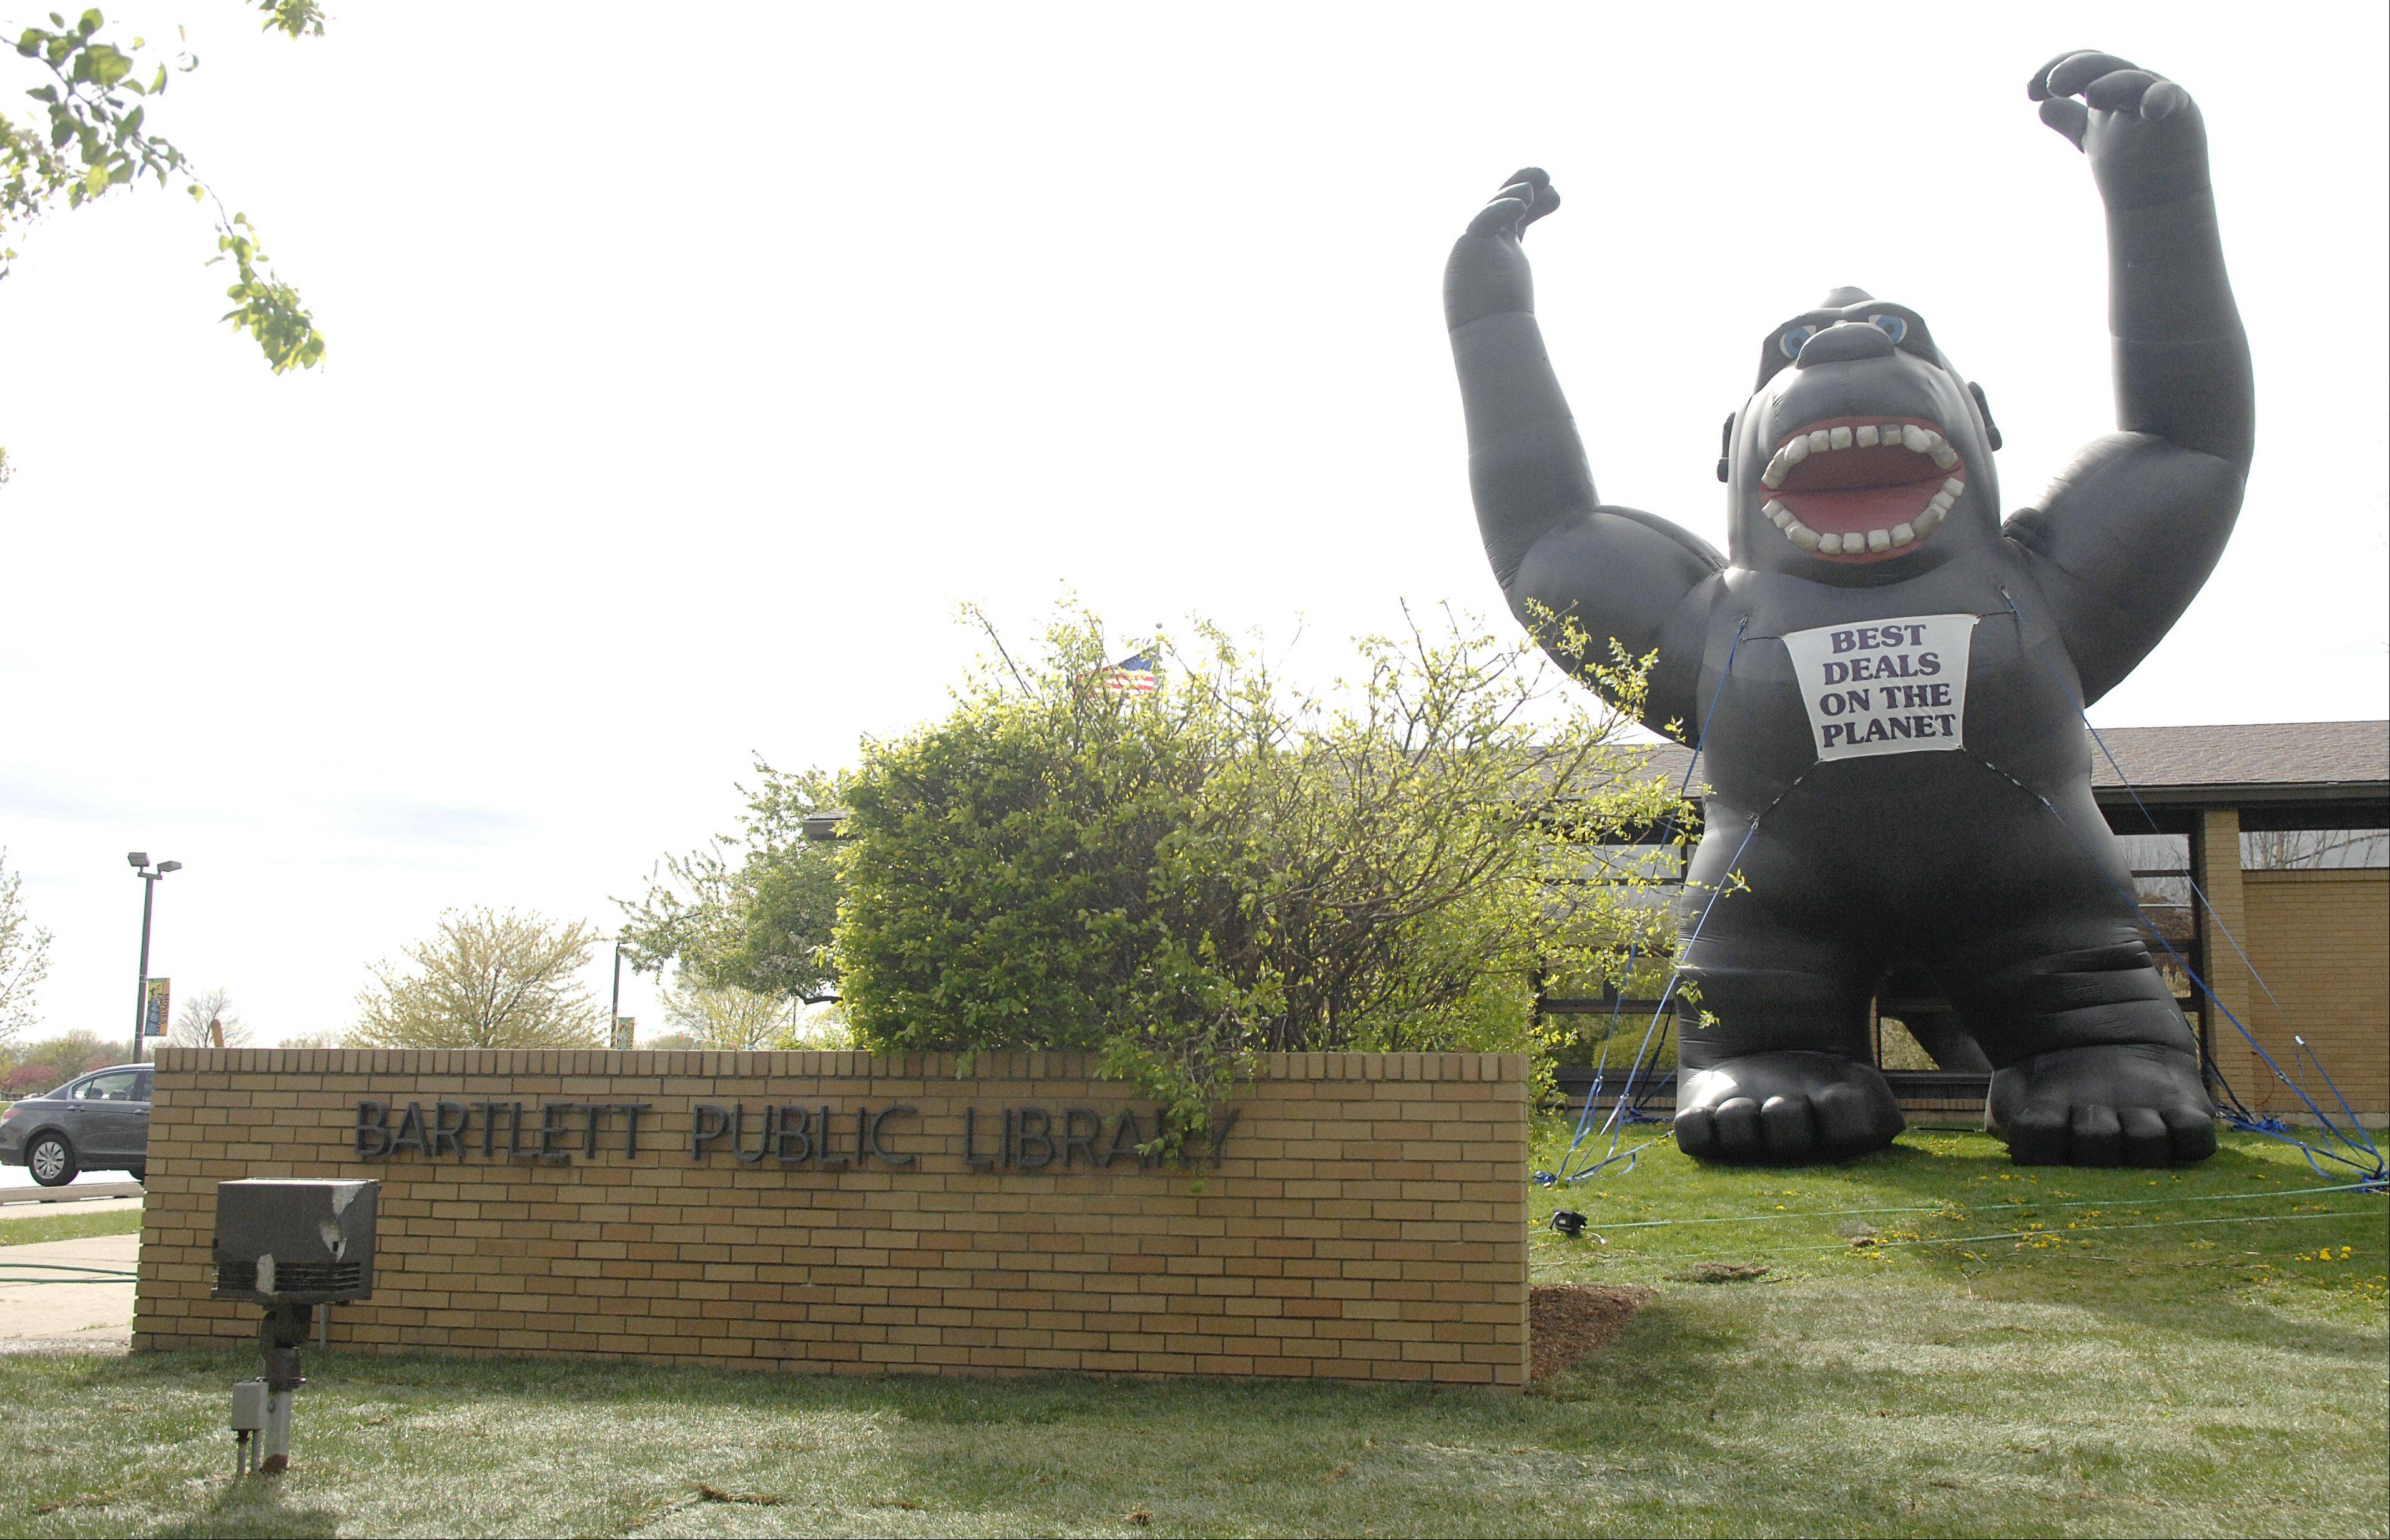 A giant inflatable gorilla greets drivers on Bartlett Road in front of the Bartlett Public Library. The library is celebrating National Library Week by taking on the appearance of a car dealership to bring in patrons. Signs, window paintings and flags adorn the exterior and prizes await inside.